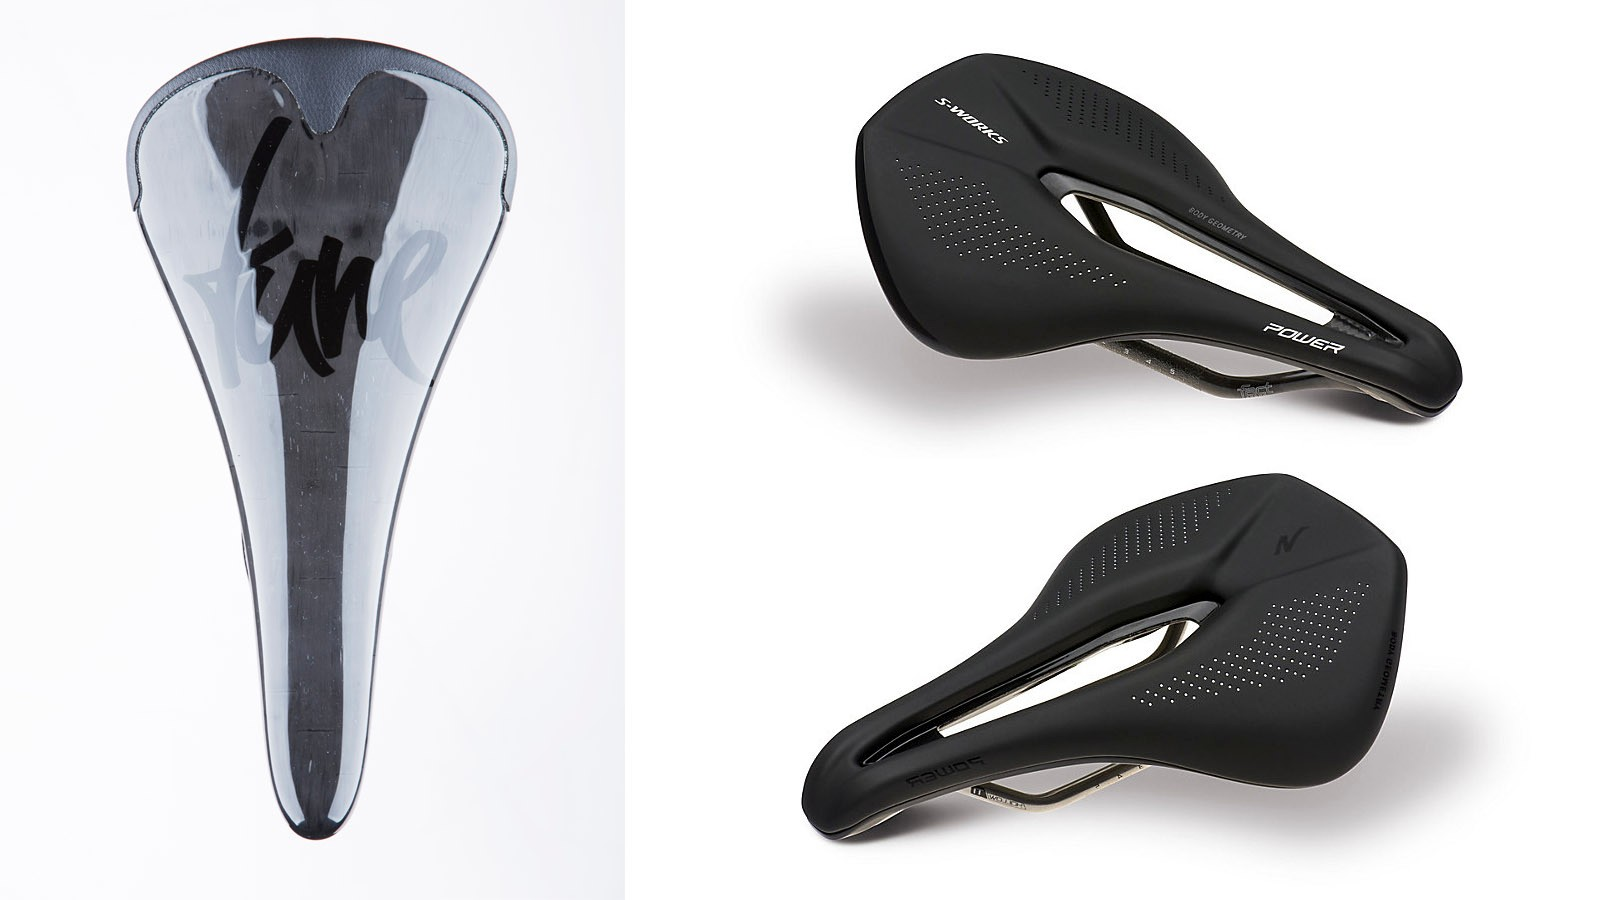 While there are plenty of full carbon ultralight saddles out there, there are much more practical weight weenie upgrades available